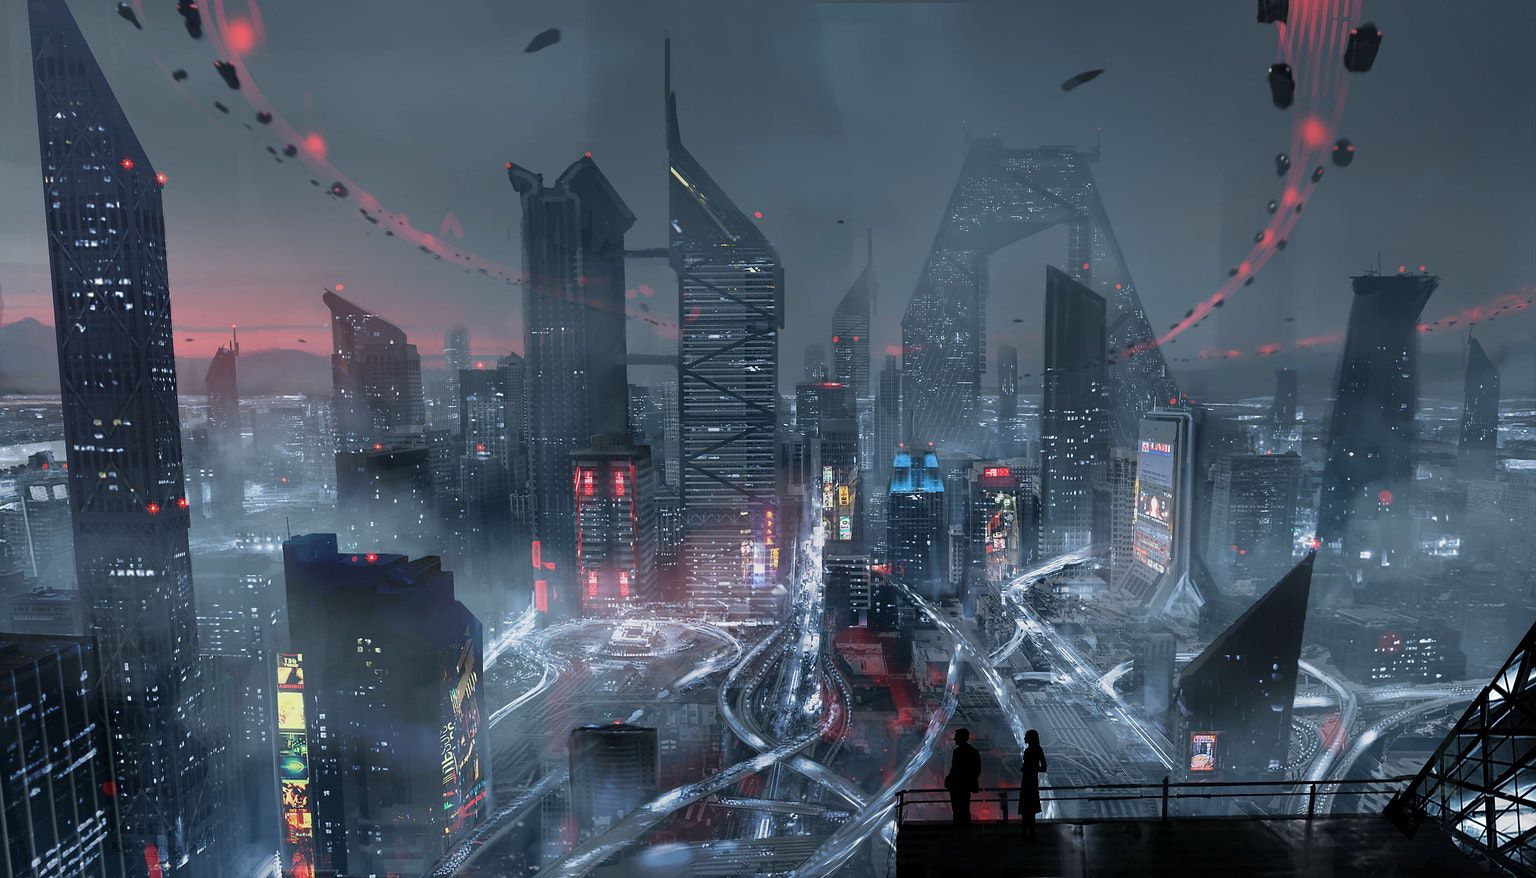 Altered Carbon - future city skyline